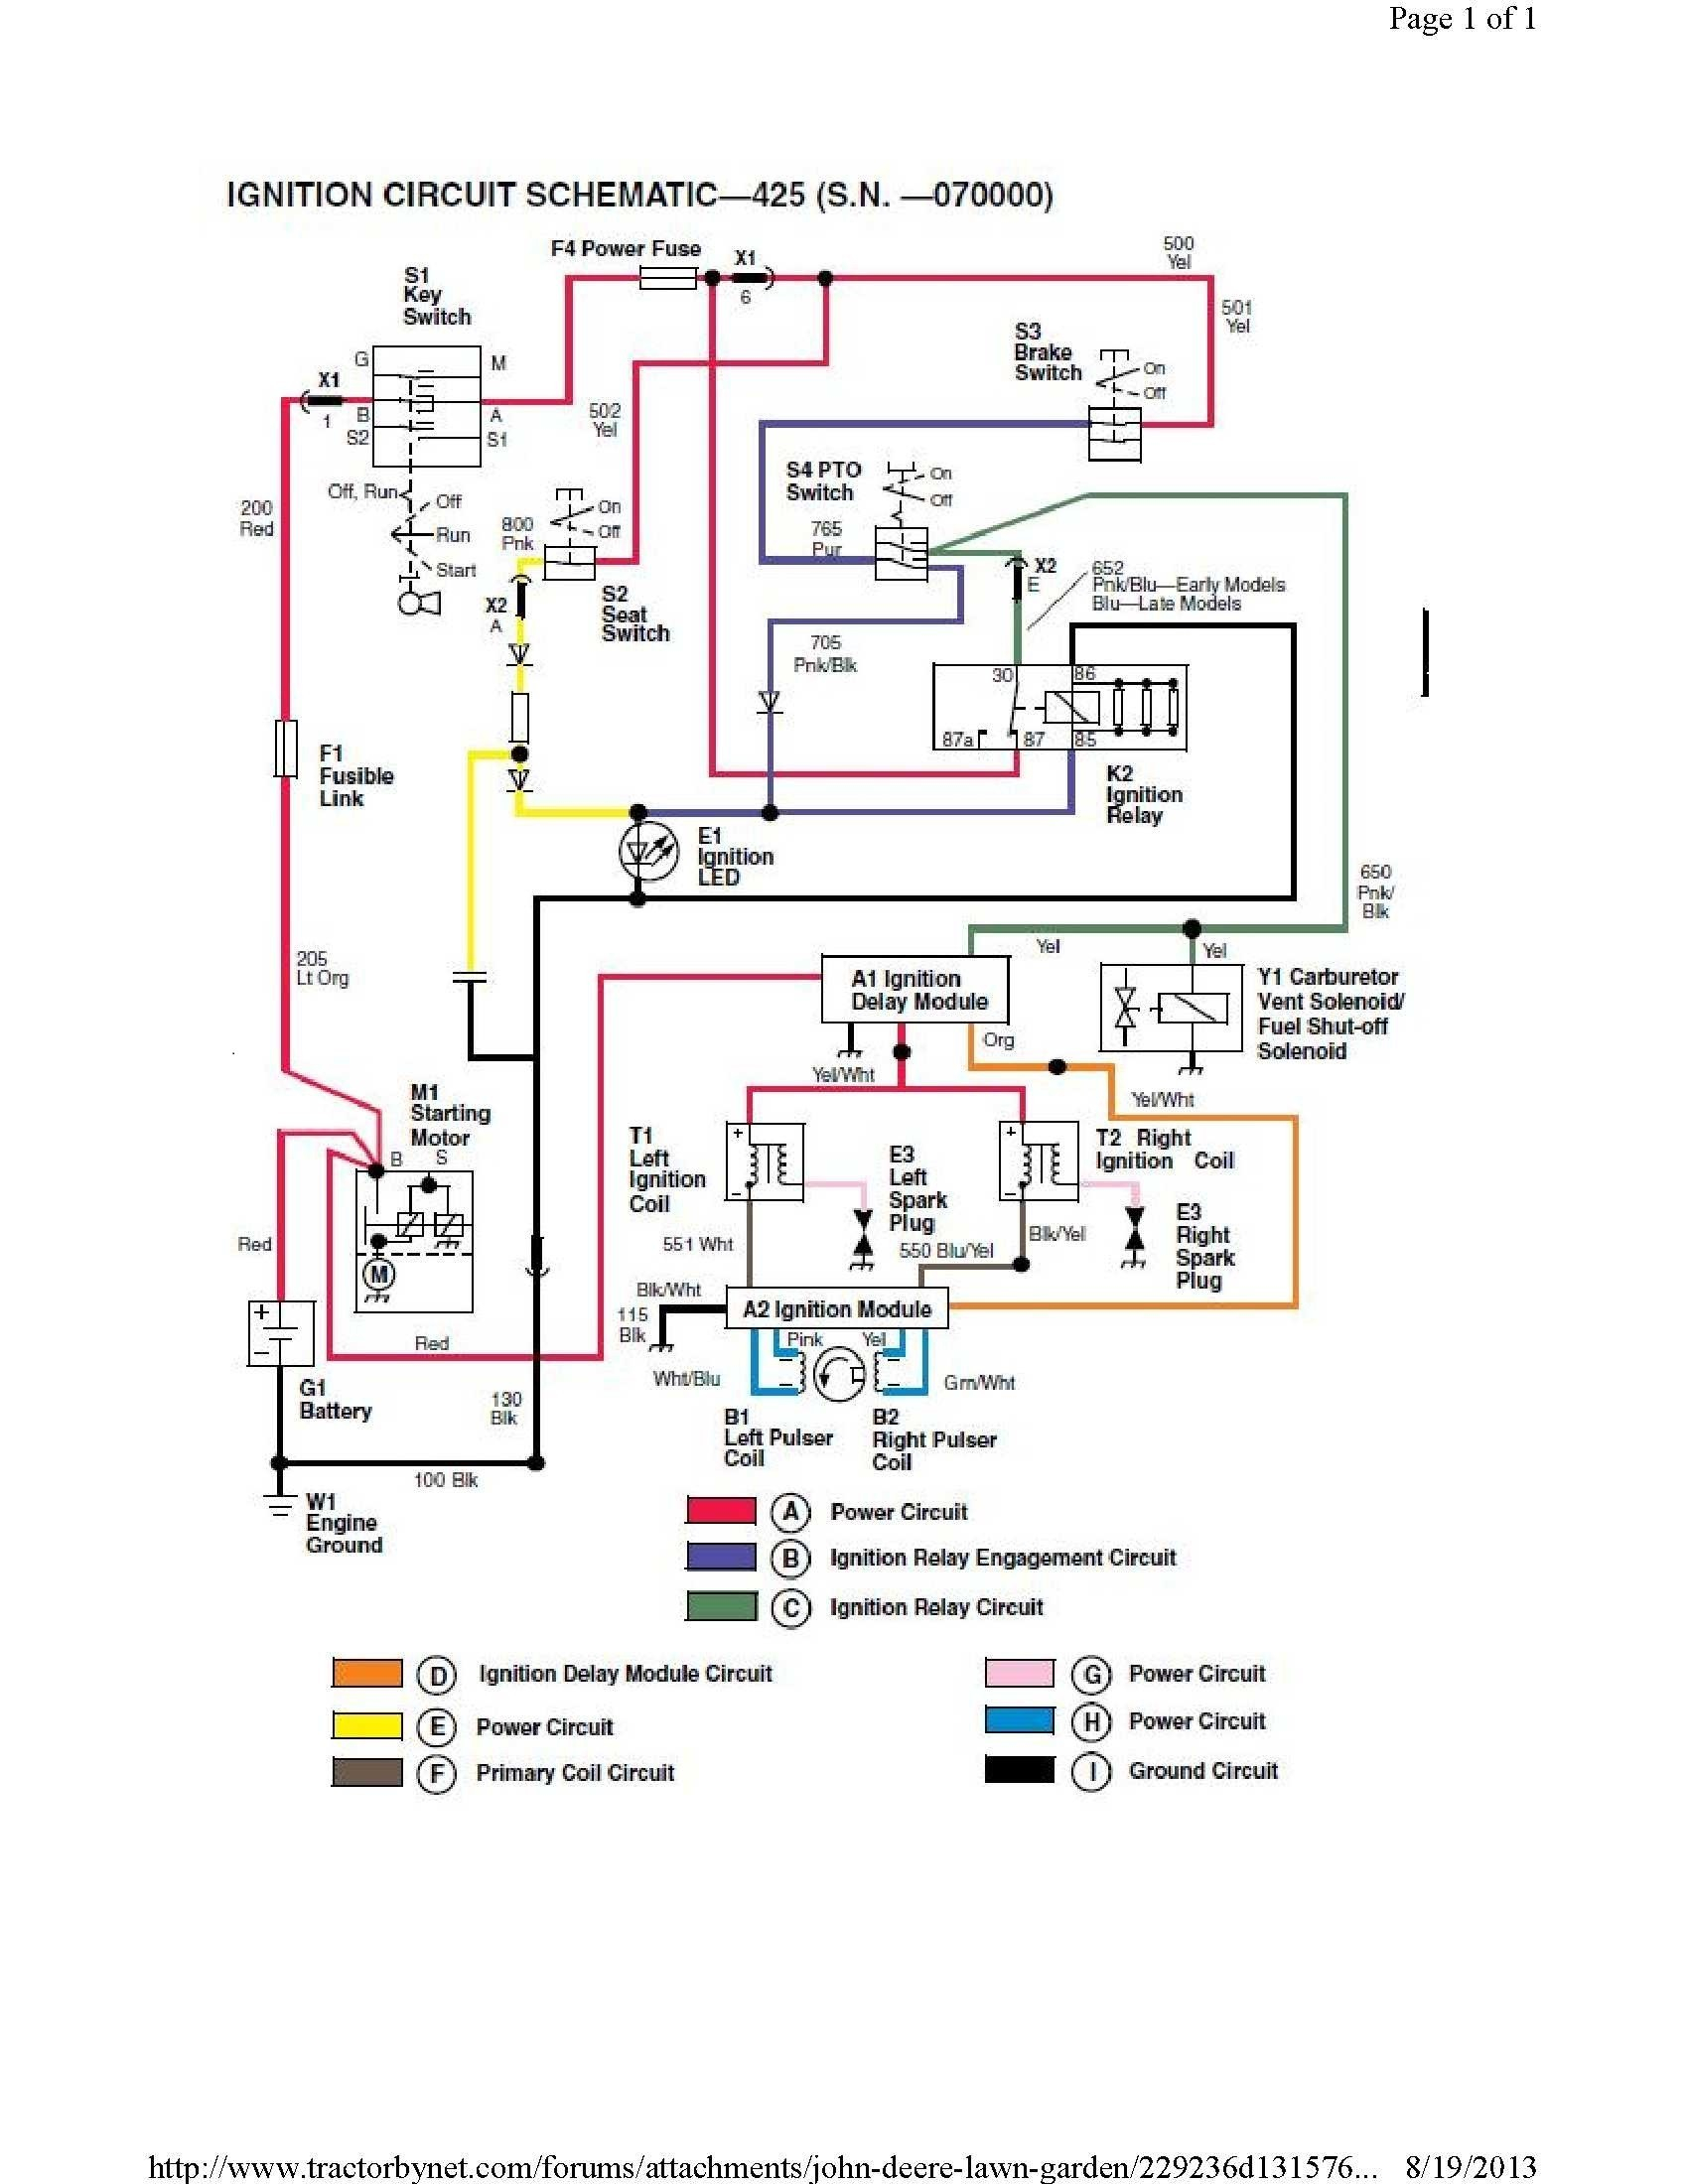 John Deere L120 Wiring Diagram Pdf from wholefoodsonabudget.com